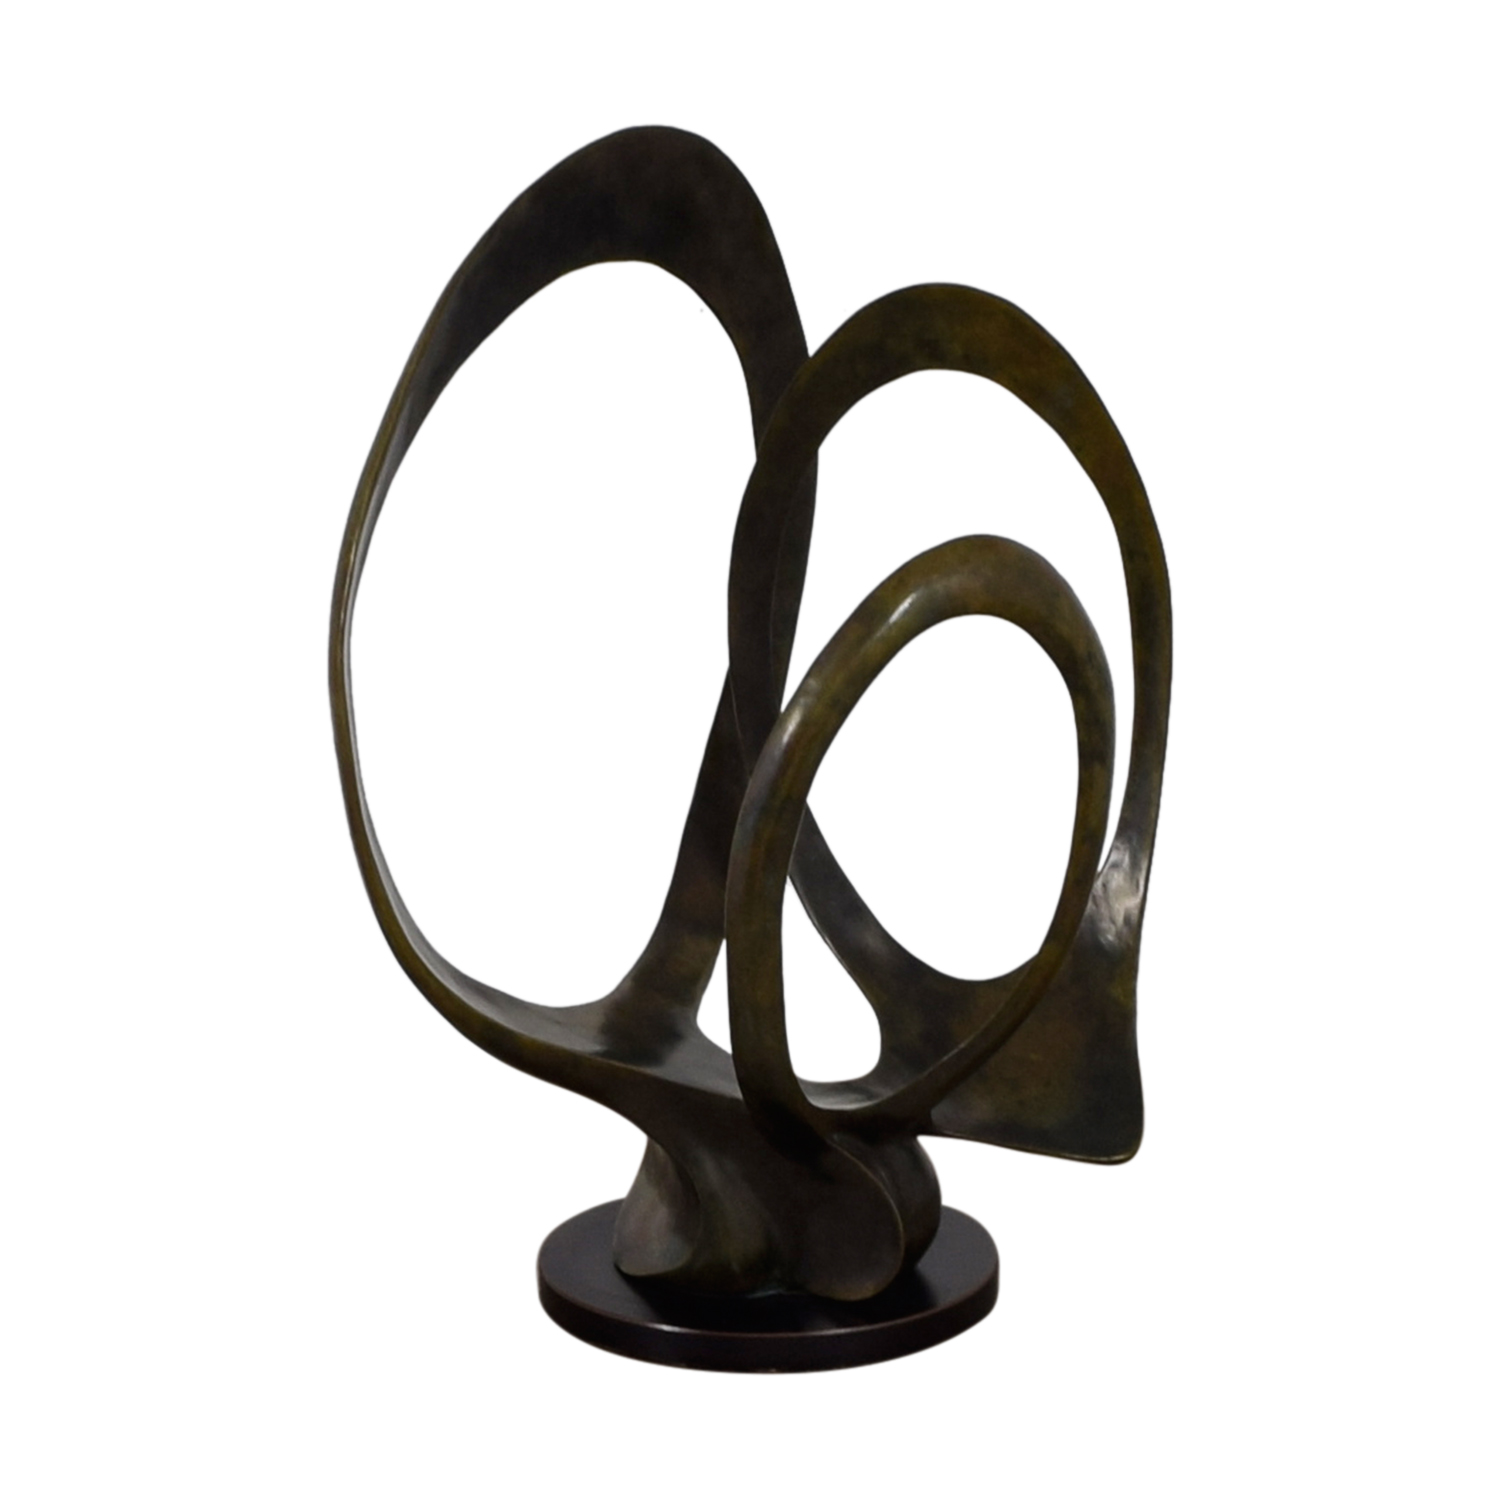 buy Decorative Metal Sculpture  Decorative Accents